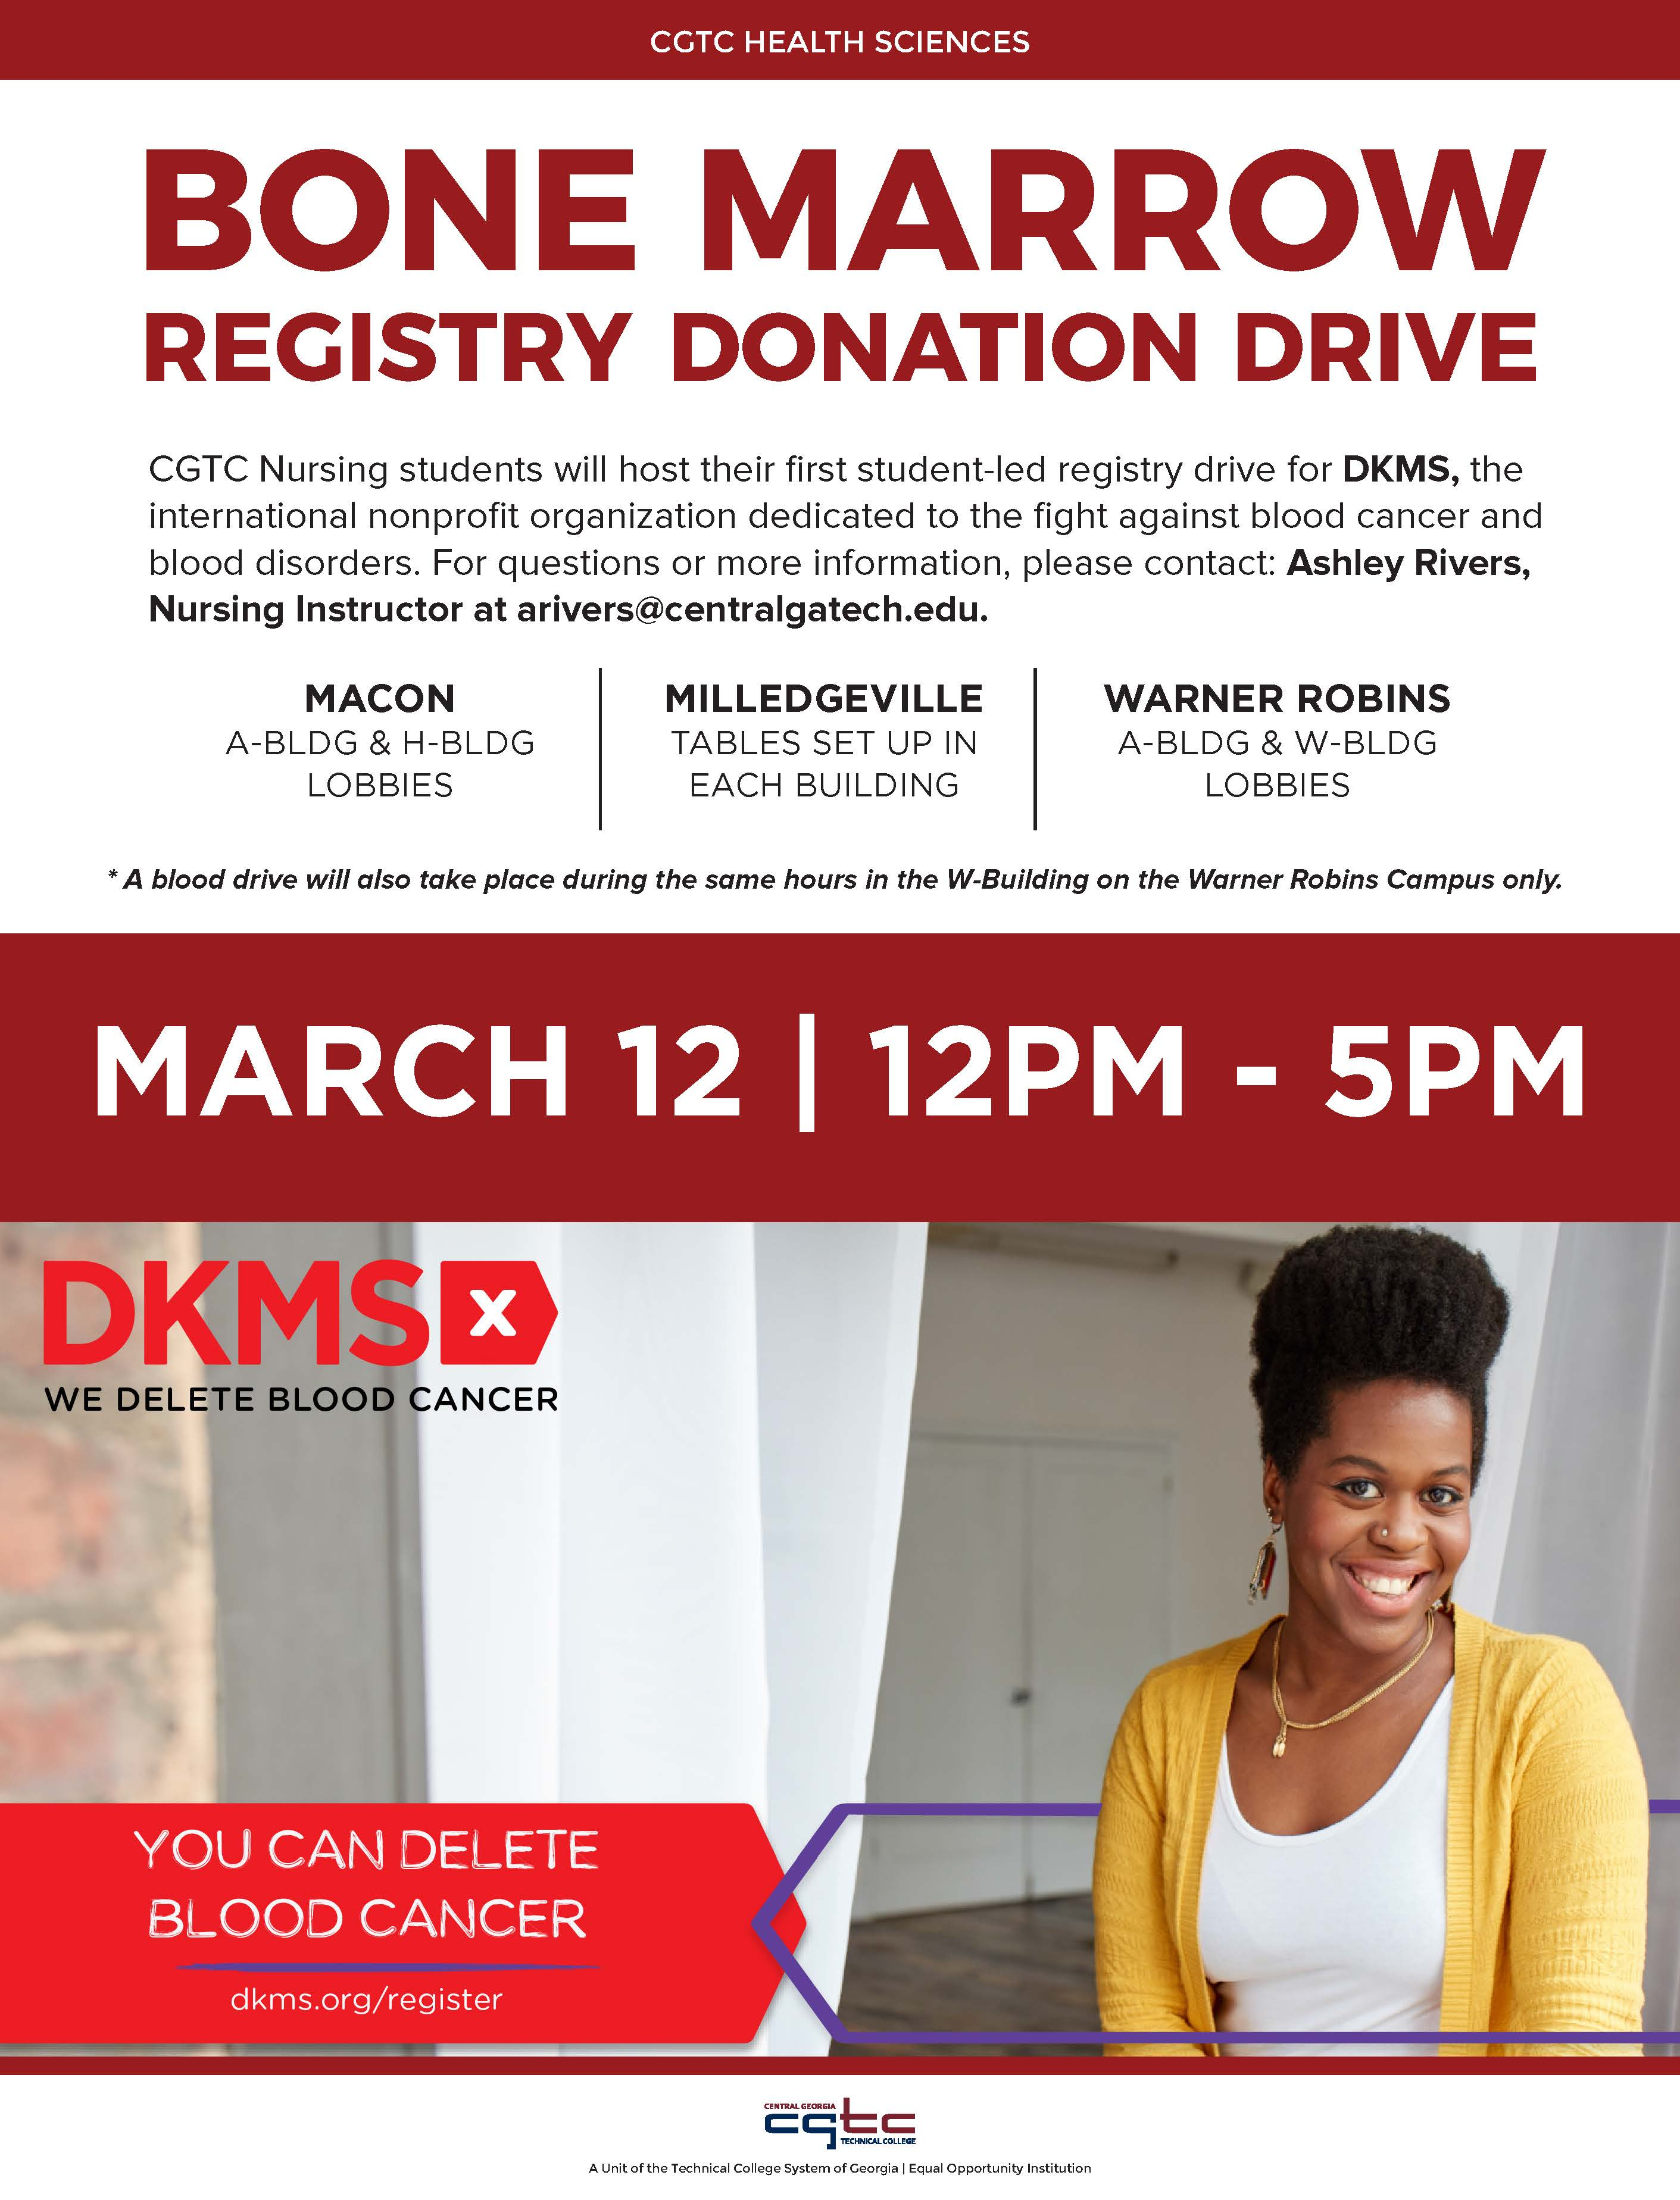 Infographic for upcoming bone marrow registry drive at CGTC.